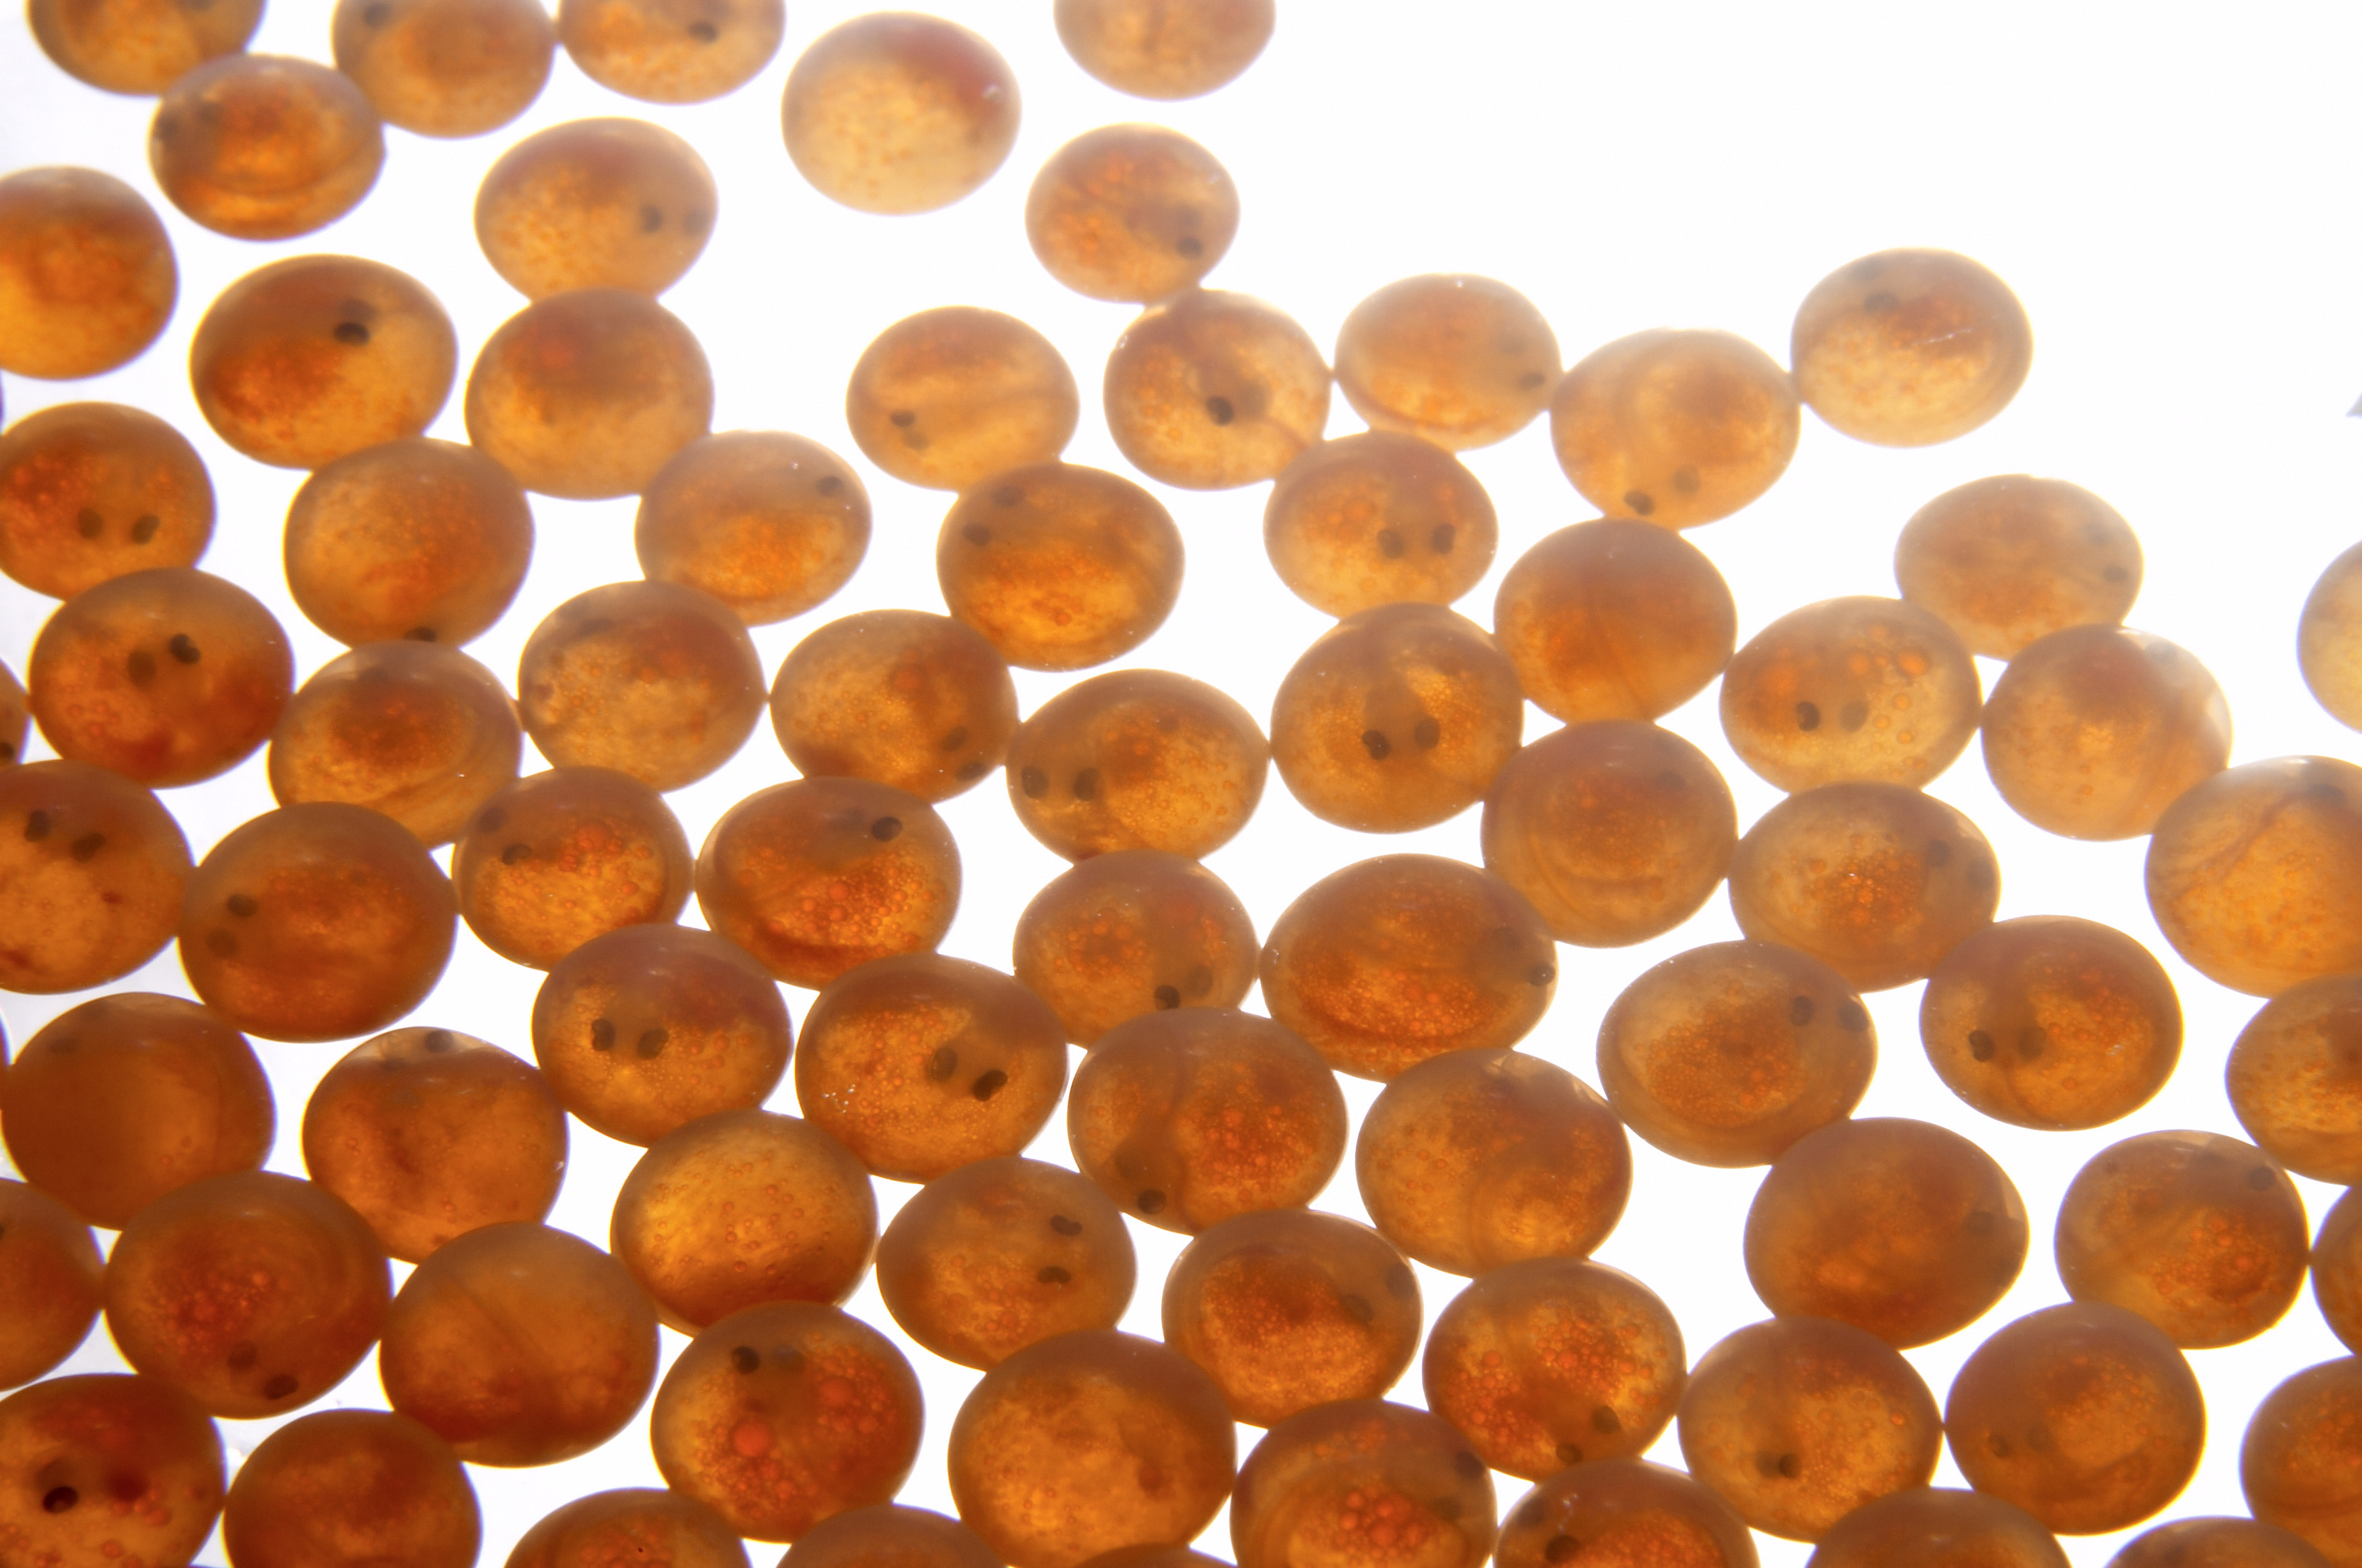 salmon roe which look like small orange/brown spheres on a bright white background.